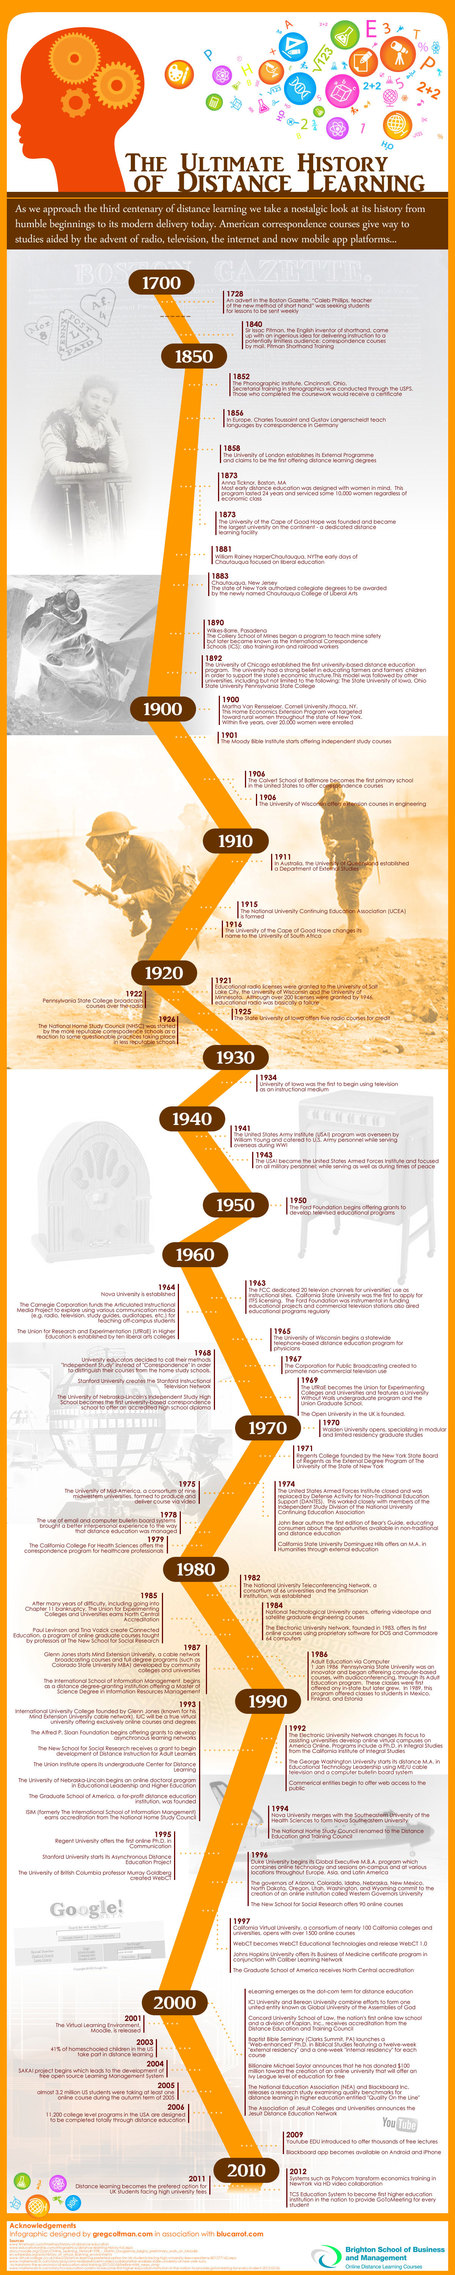 The History of Distance Learning as an Infographic | New Seoul FC Plan | Scoop.it